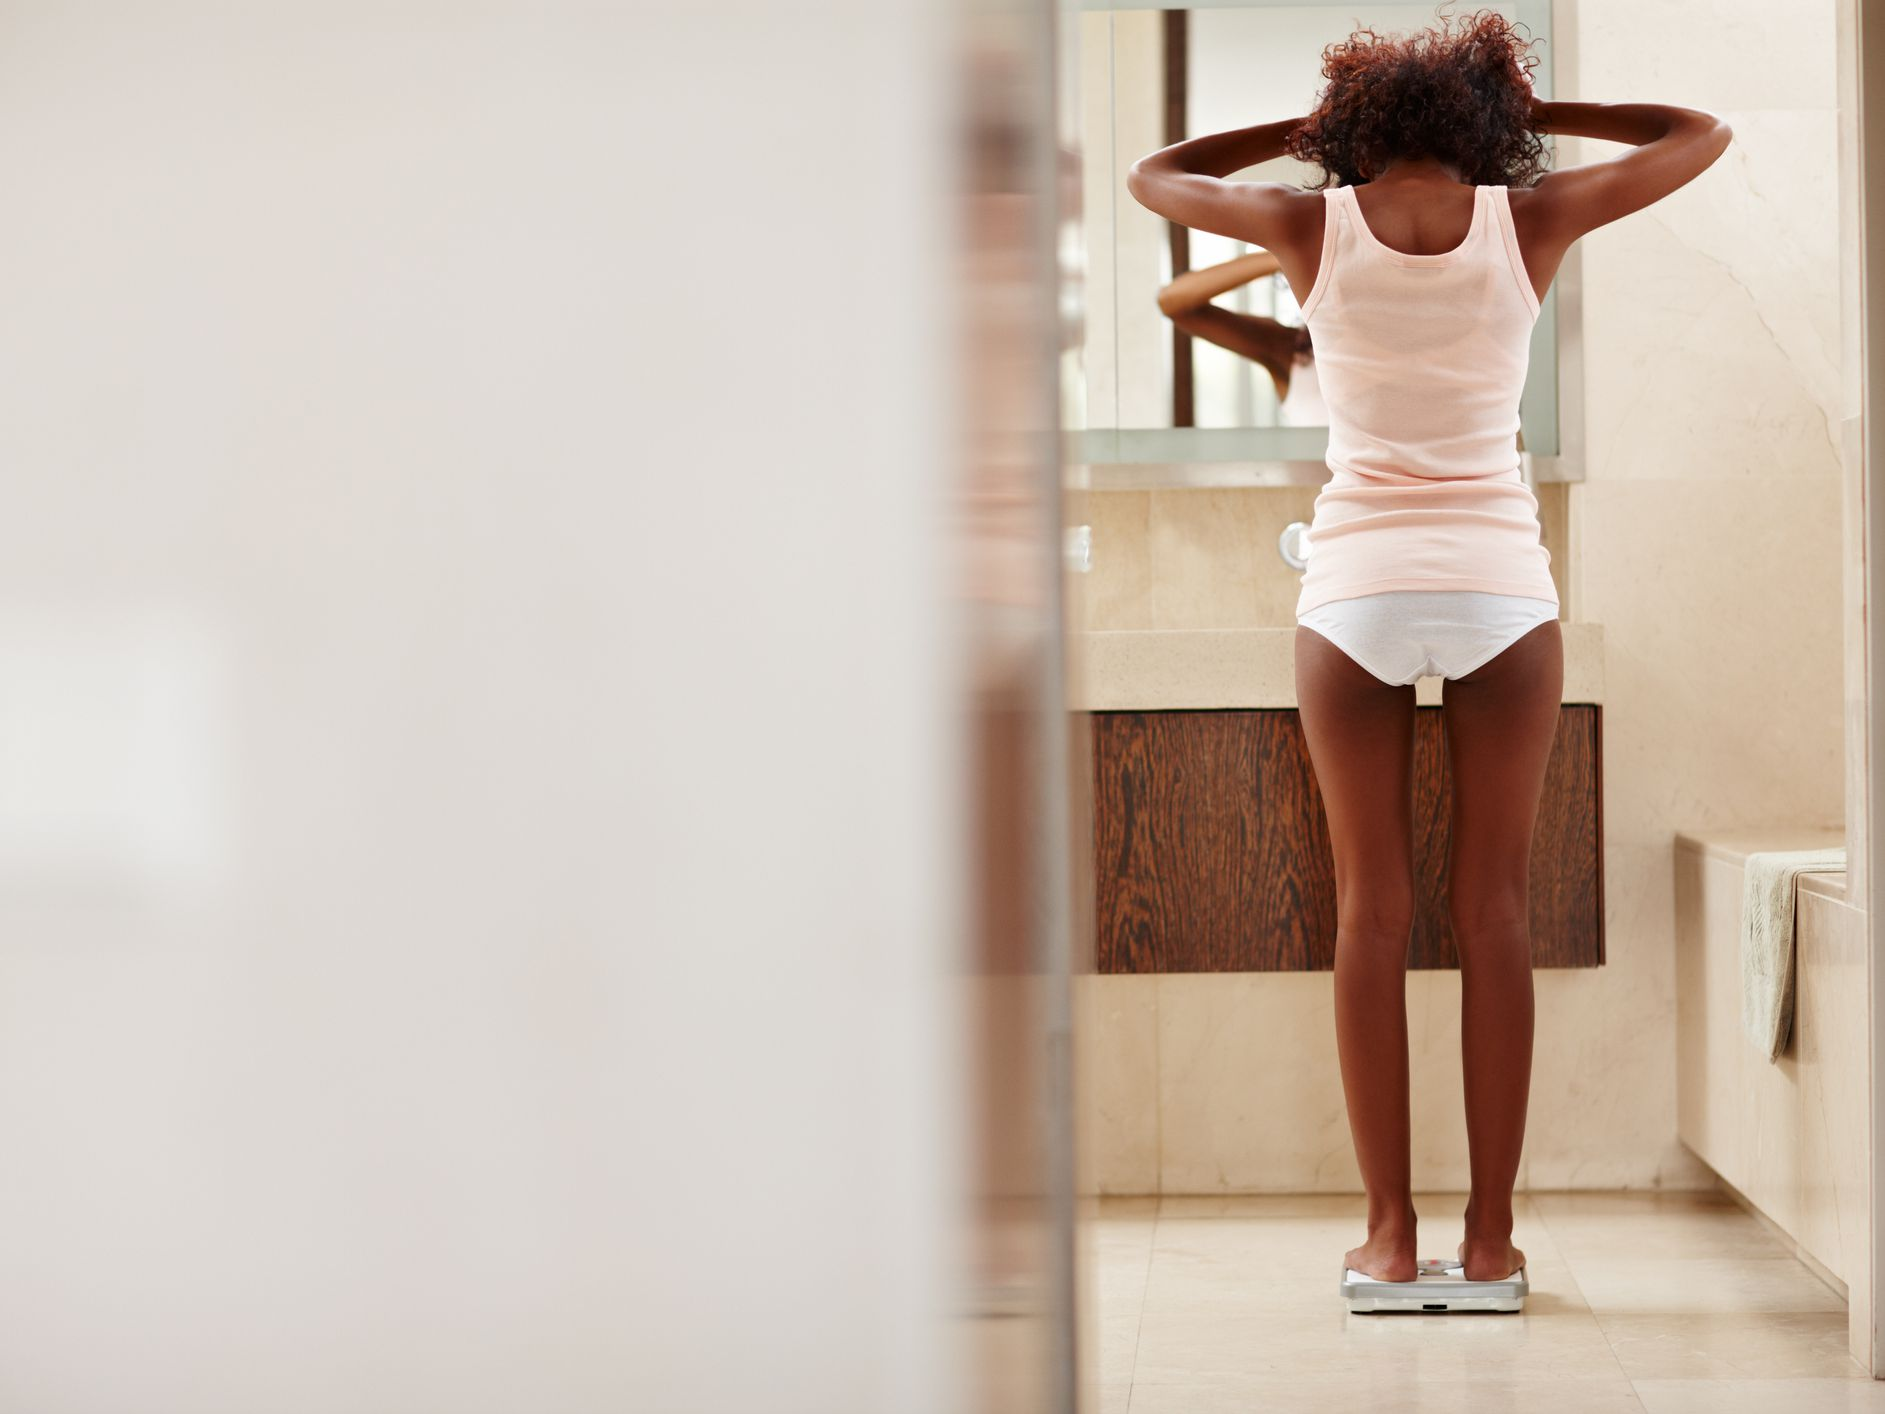 Of think girls with anorexia what guys do Anorexia Nervosa